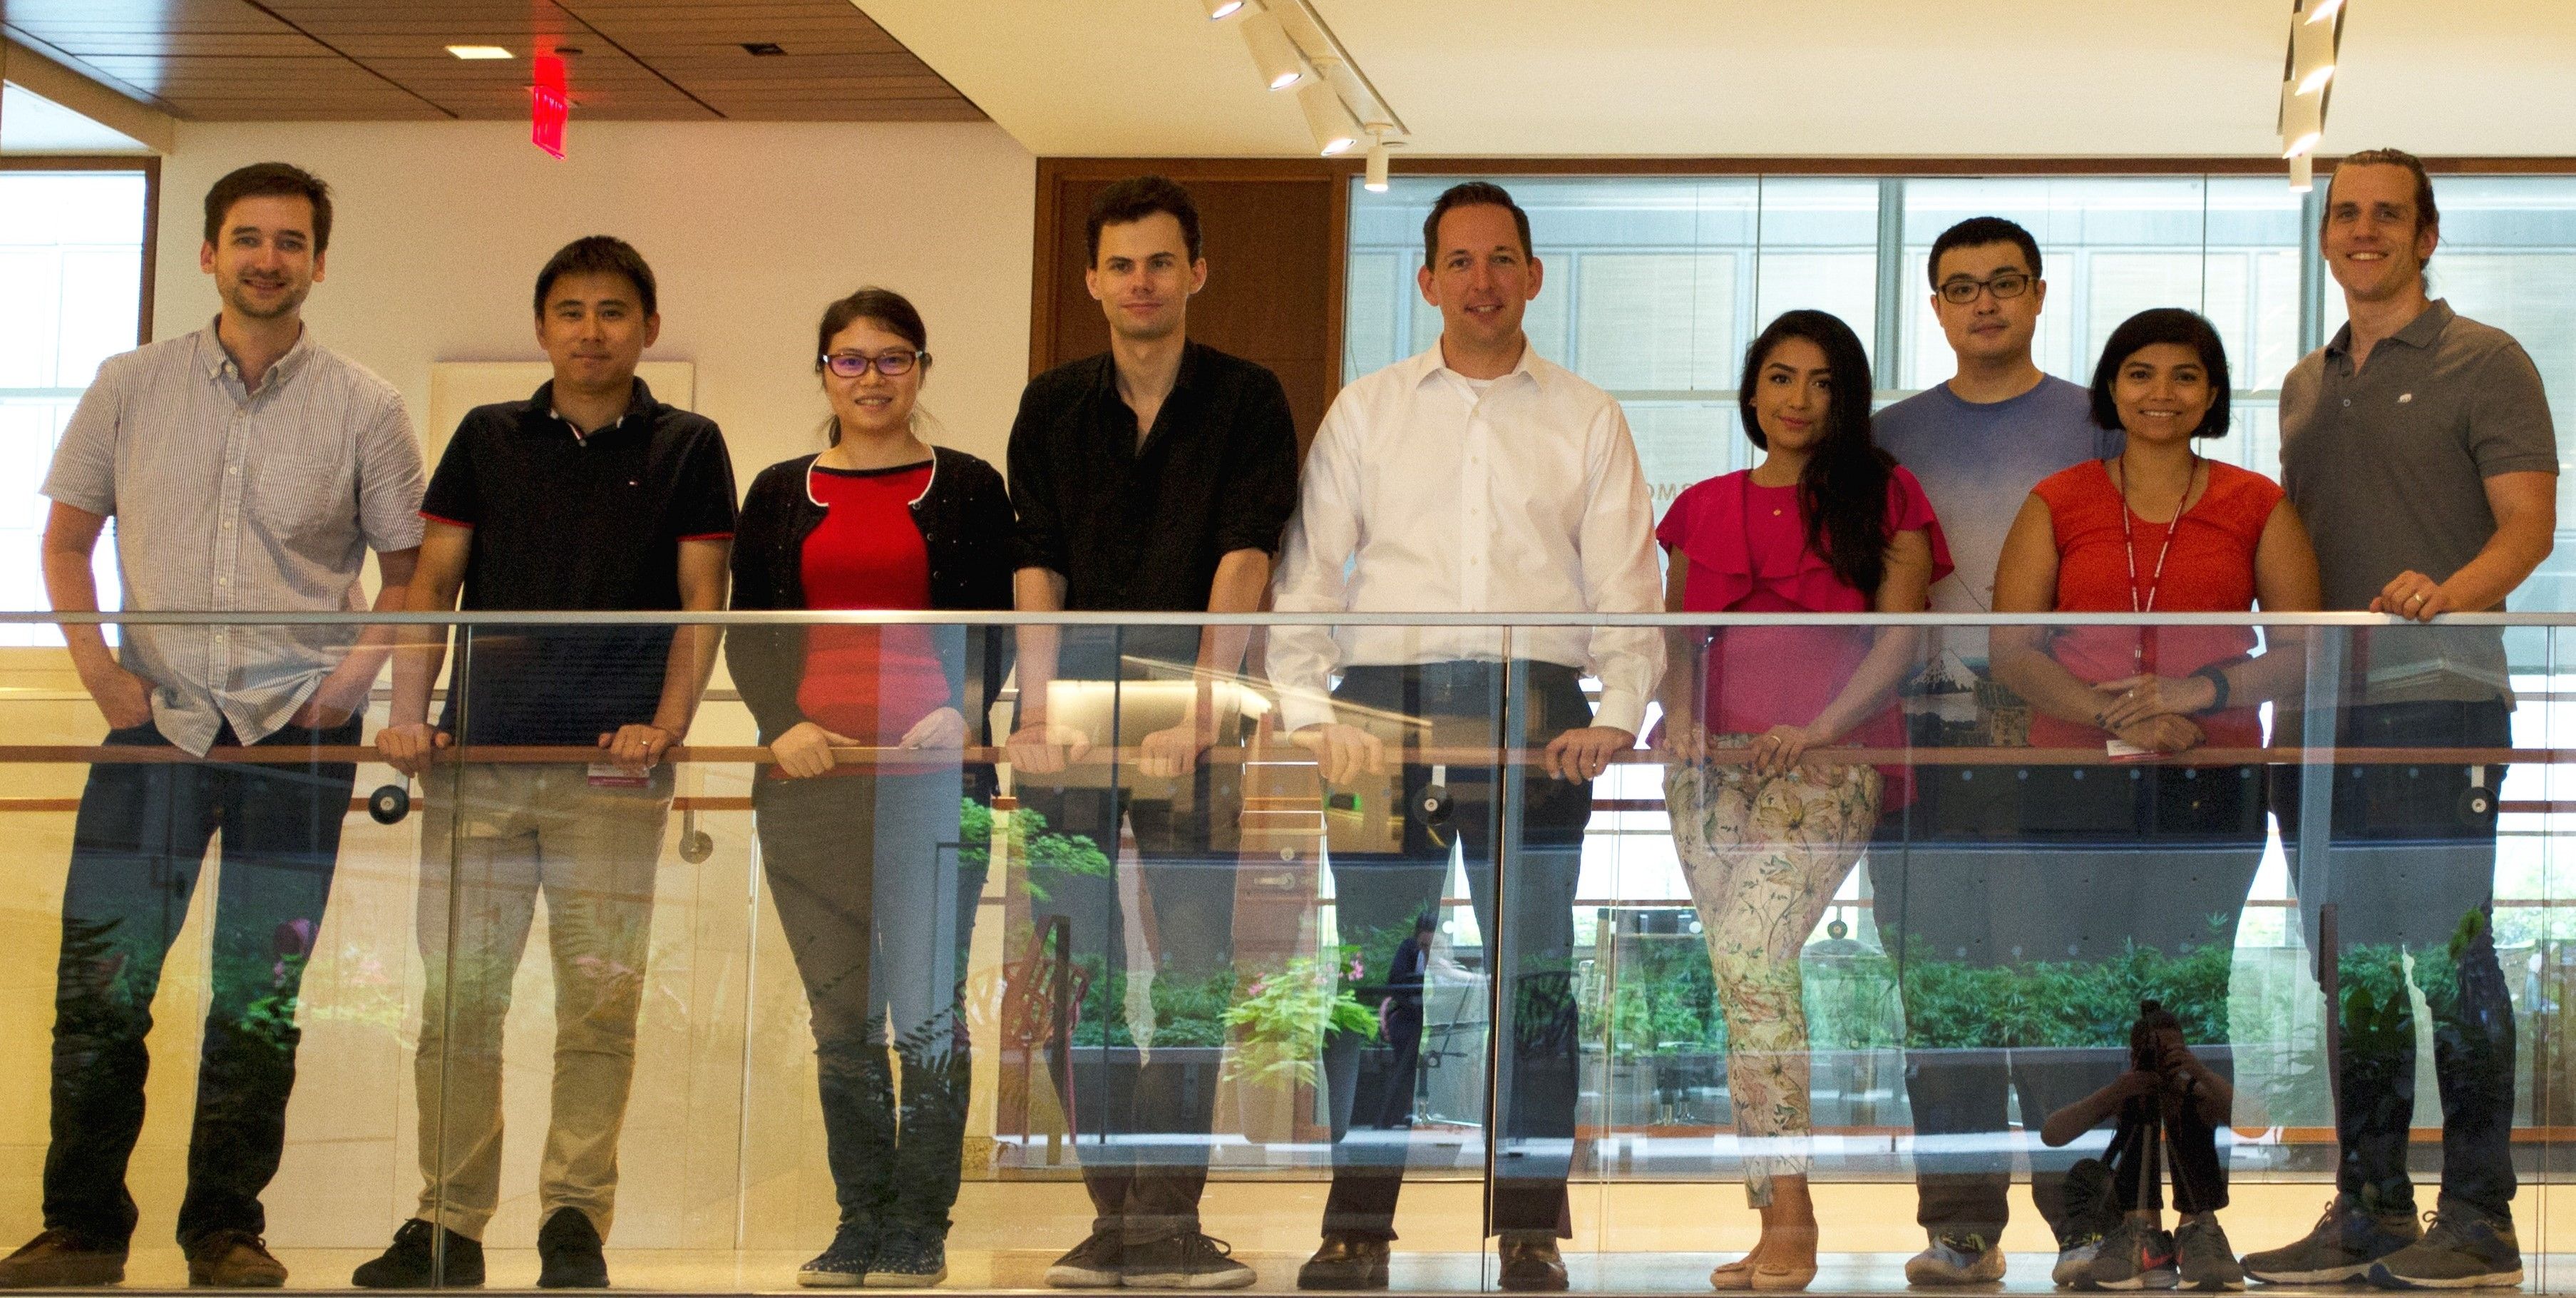 The Sonnenberg Lab (from left to right): John B. Grigg, Dr. Lei Zhou, Dr. Wenqing Zhou, Dr. Jeremy Goc, Dr. Gregory F. Sonnenberg, Samah Mozumder, Dr. Fei Teng, Dr. Ann Joseph, and Dr. Nicholas Bessman. Photo Credit - Jennifer Conrad